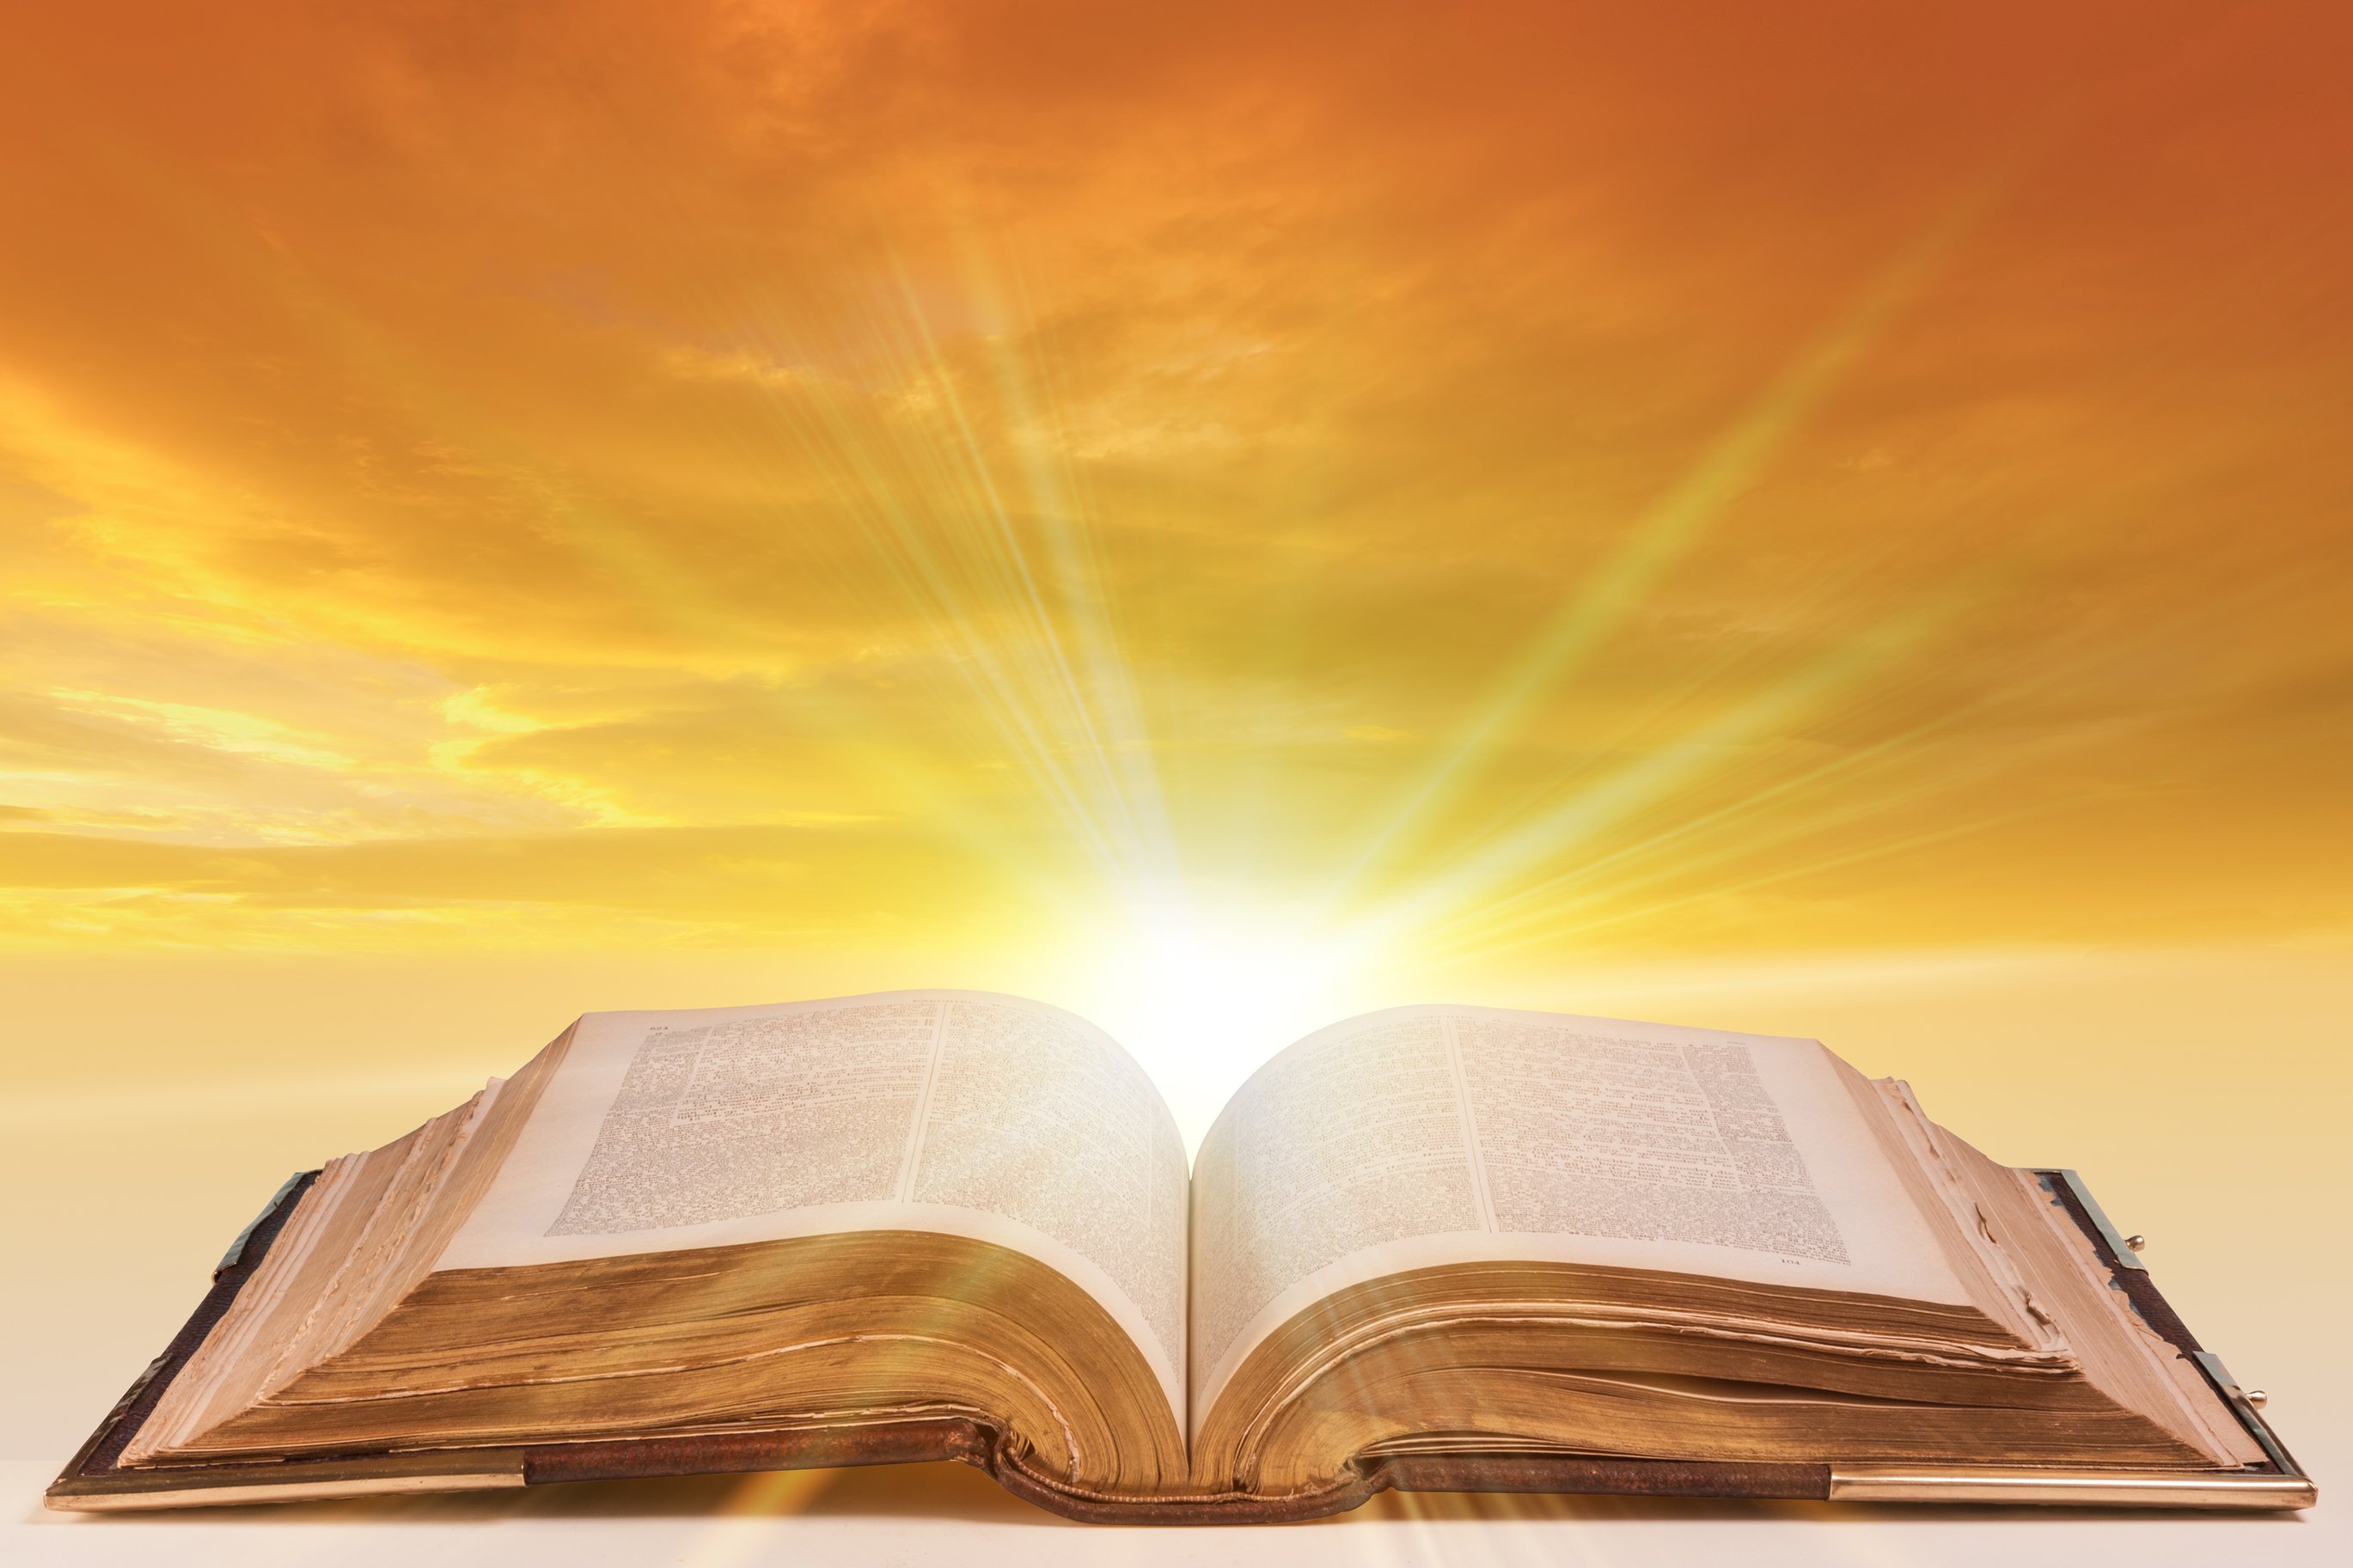 old antique bible as an open book with sunlight bursting from the pages